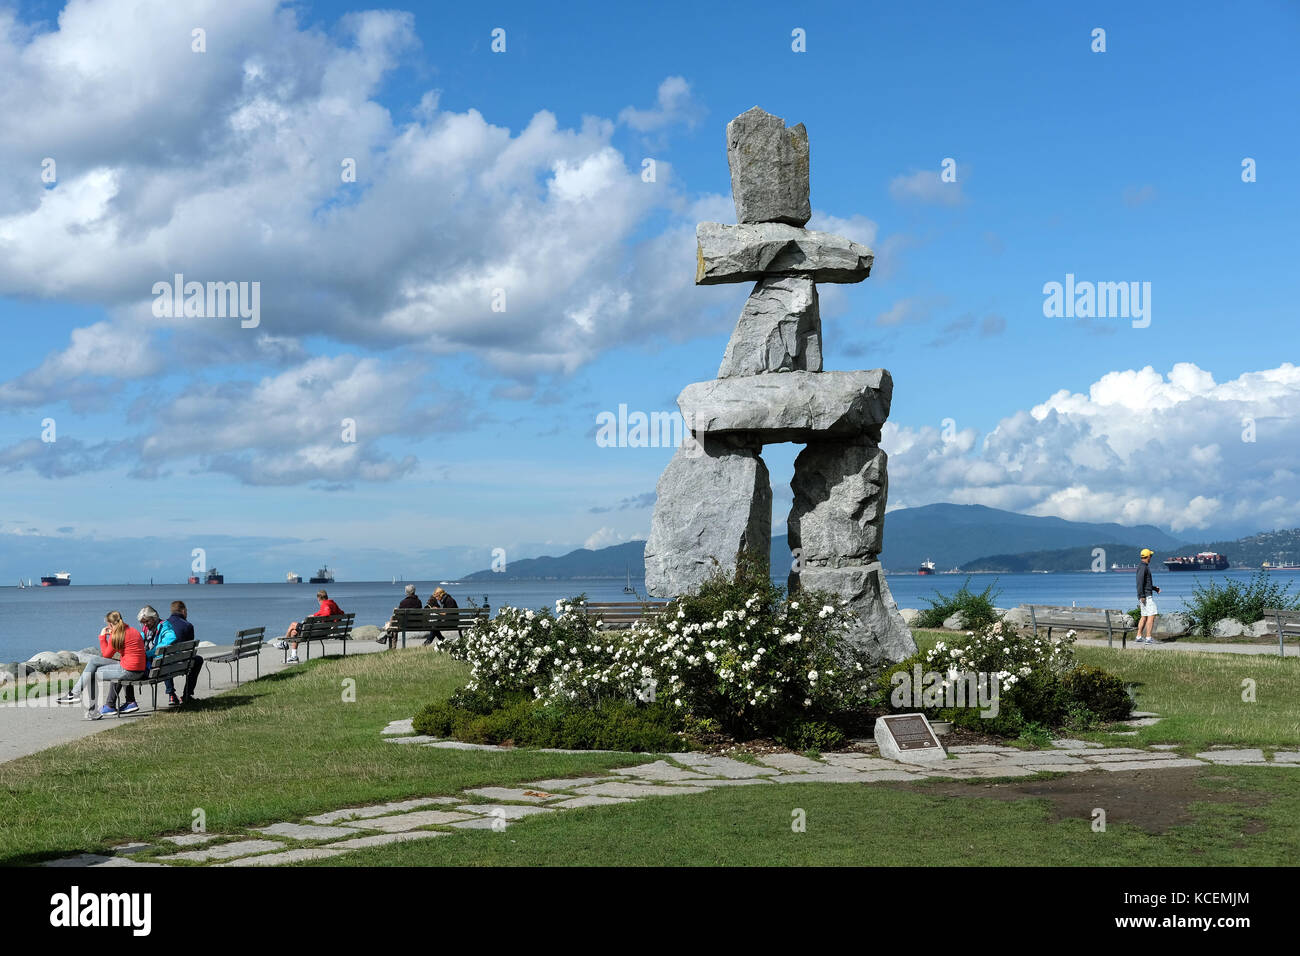 Inukshuk, a human-made stone sculpture which is an ancient symbol of the Inuit culture. The sculpture sits along - Stock Image